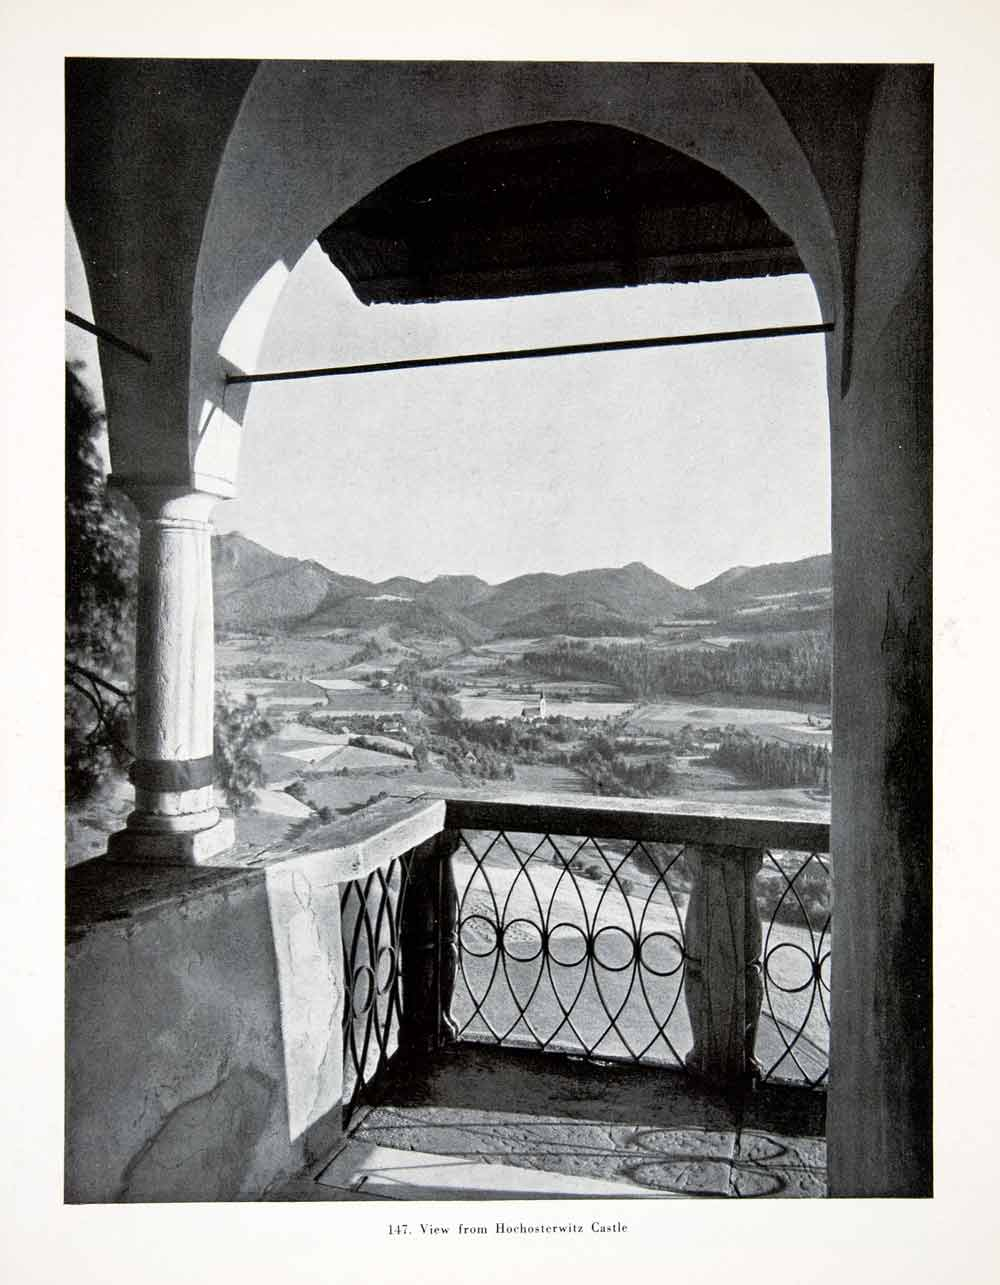 1956 Print View Hochosterwitz Castle Landscape Mountains Balcony Valley XGHC9